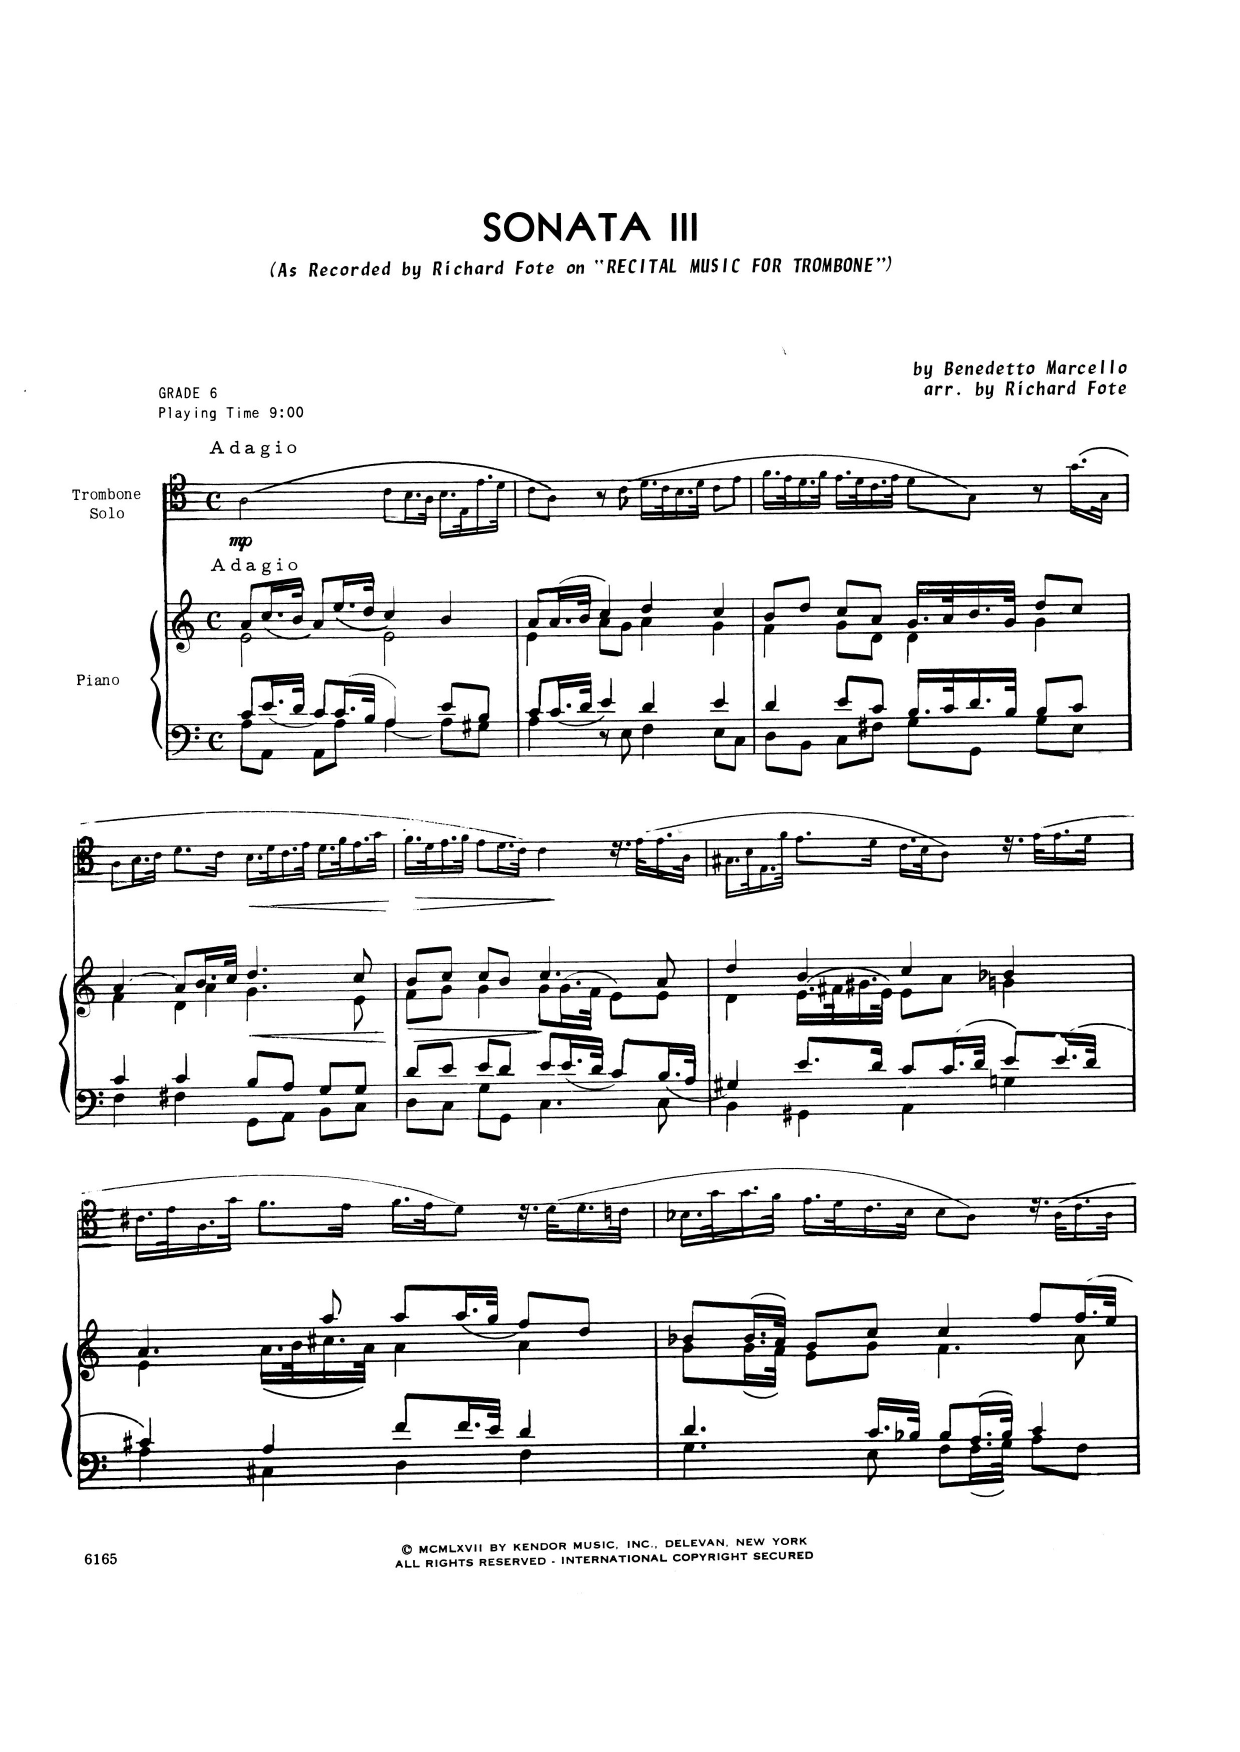 Richard Fote Sonata Iii - Piano Accompaniment sheet music notes and chords. Download Printable PDF.